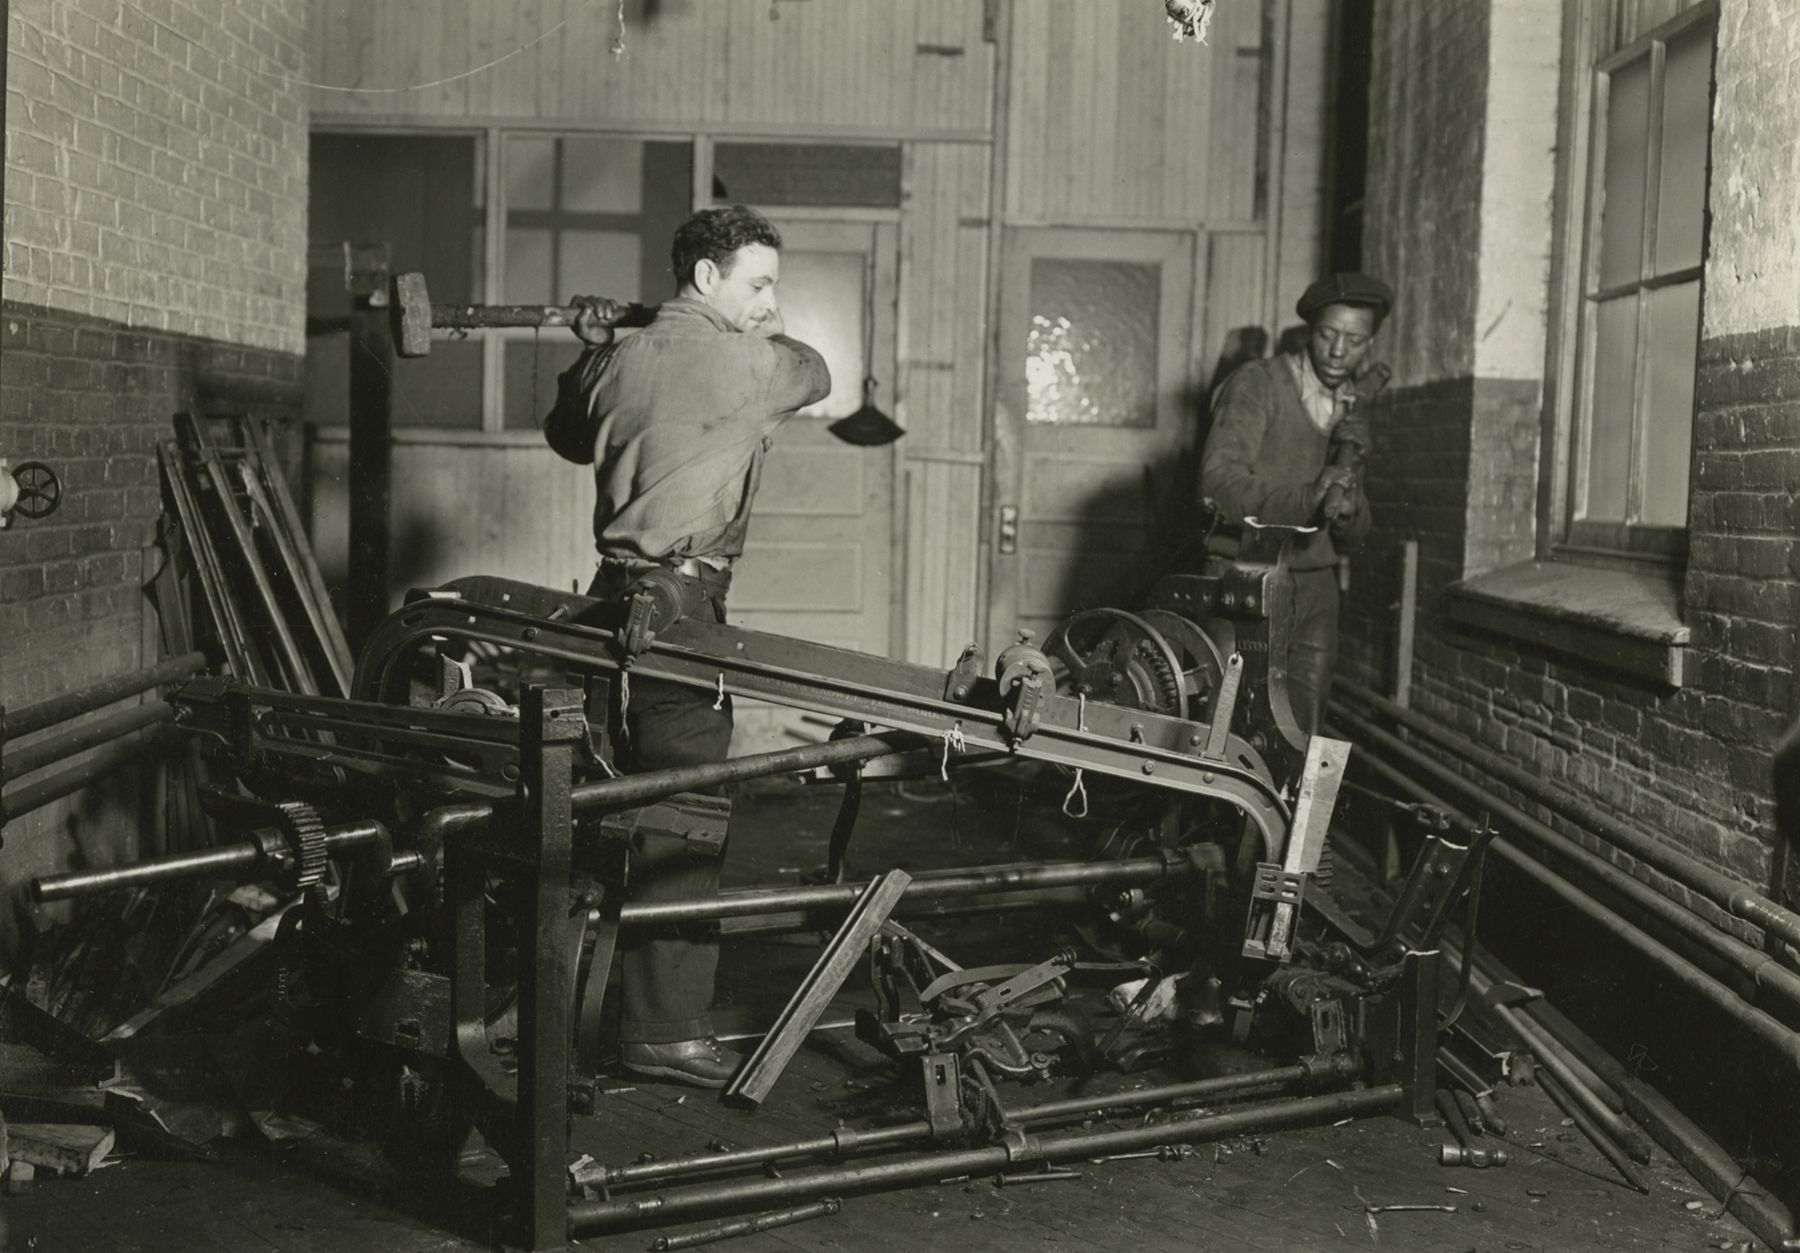 Scrap metal junkies breaking up old looms, to be sold for scrap iron and said to be sent to Japan for munitions, Paterson, New Jersey, 1936